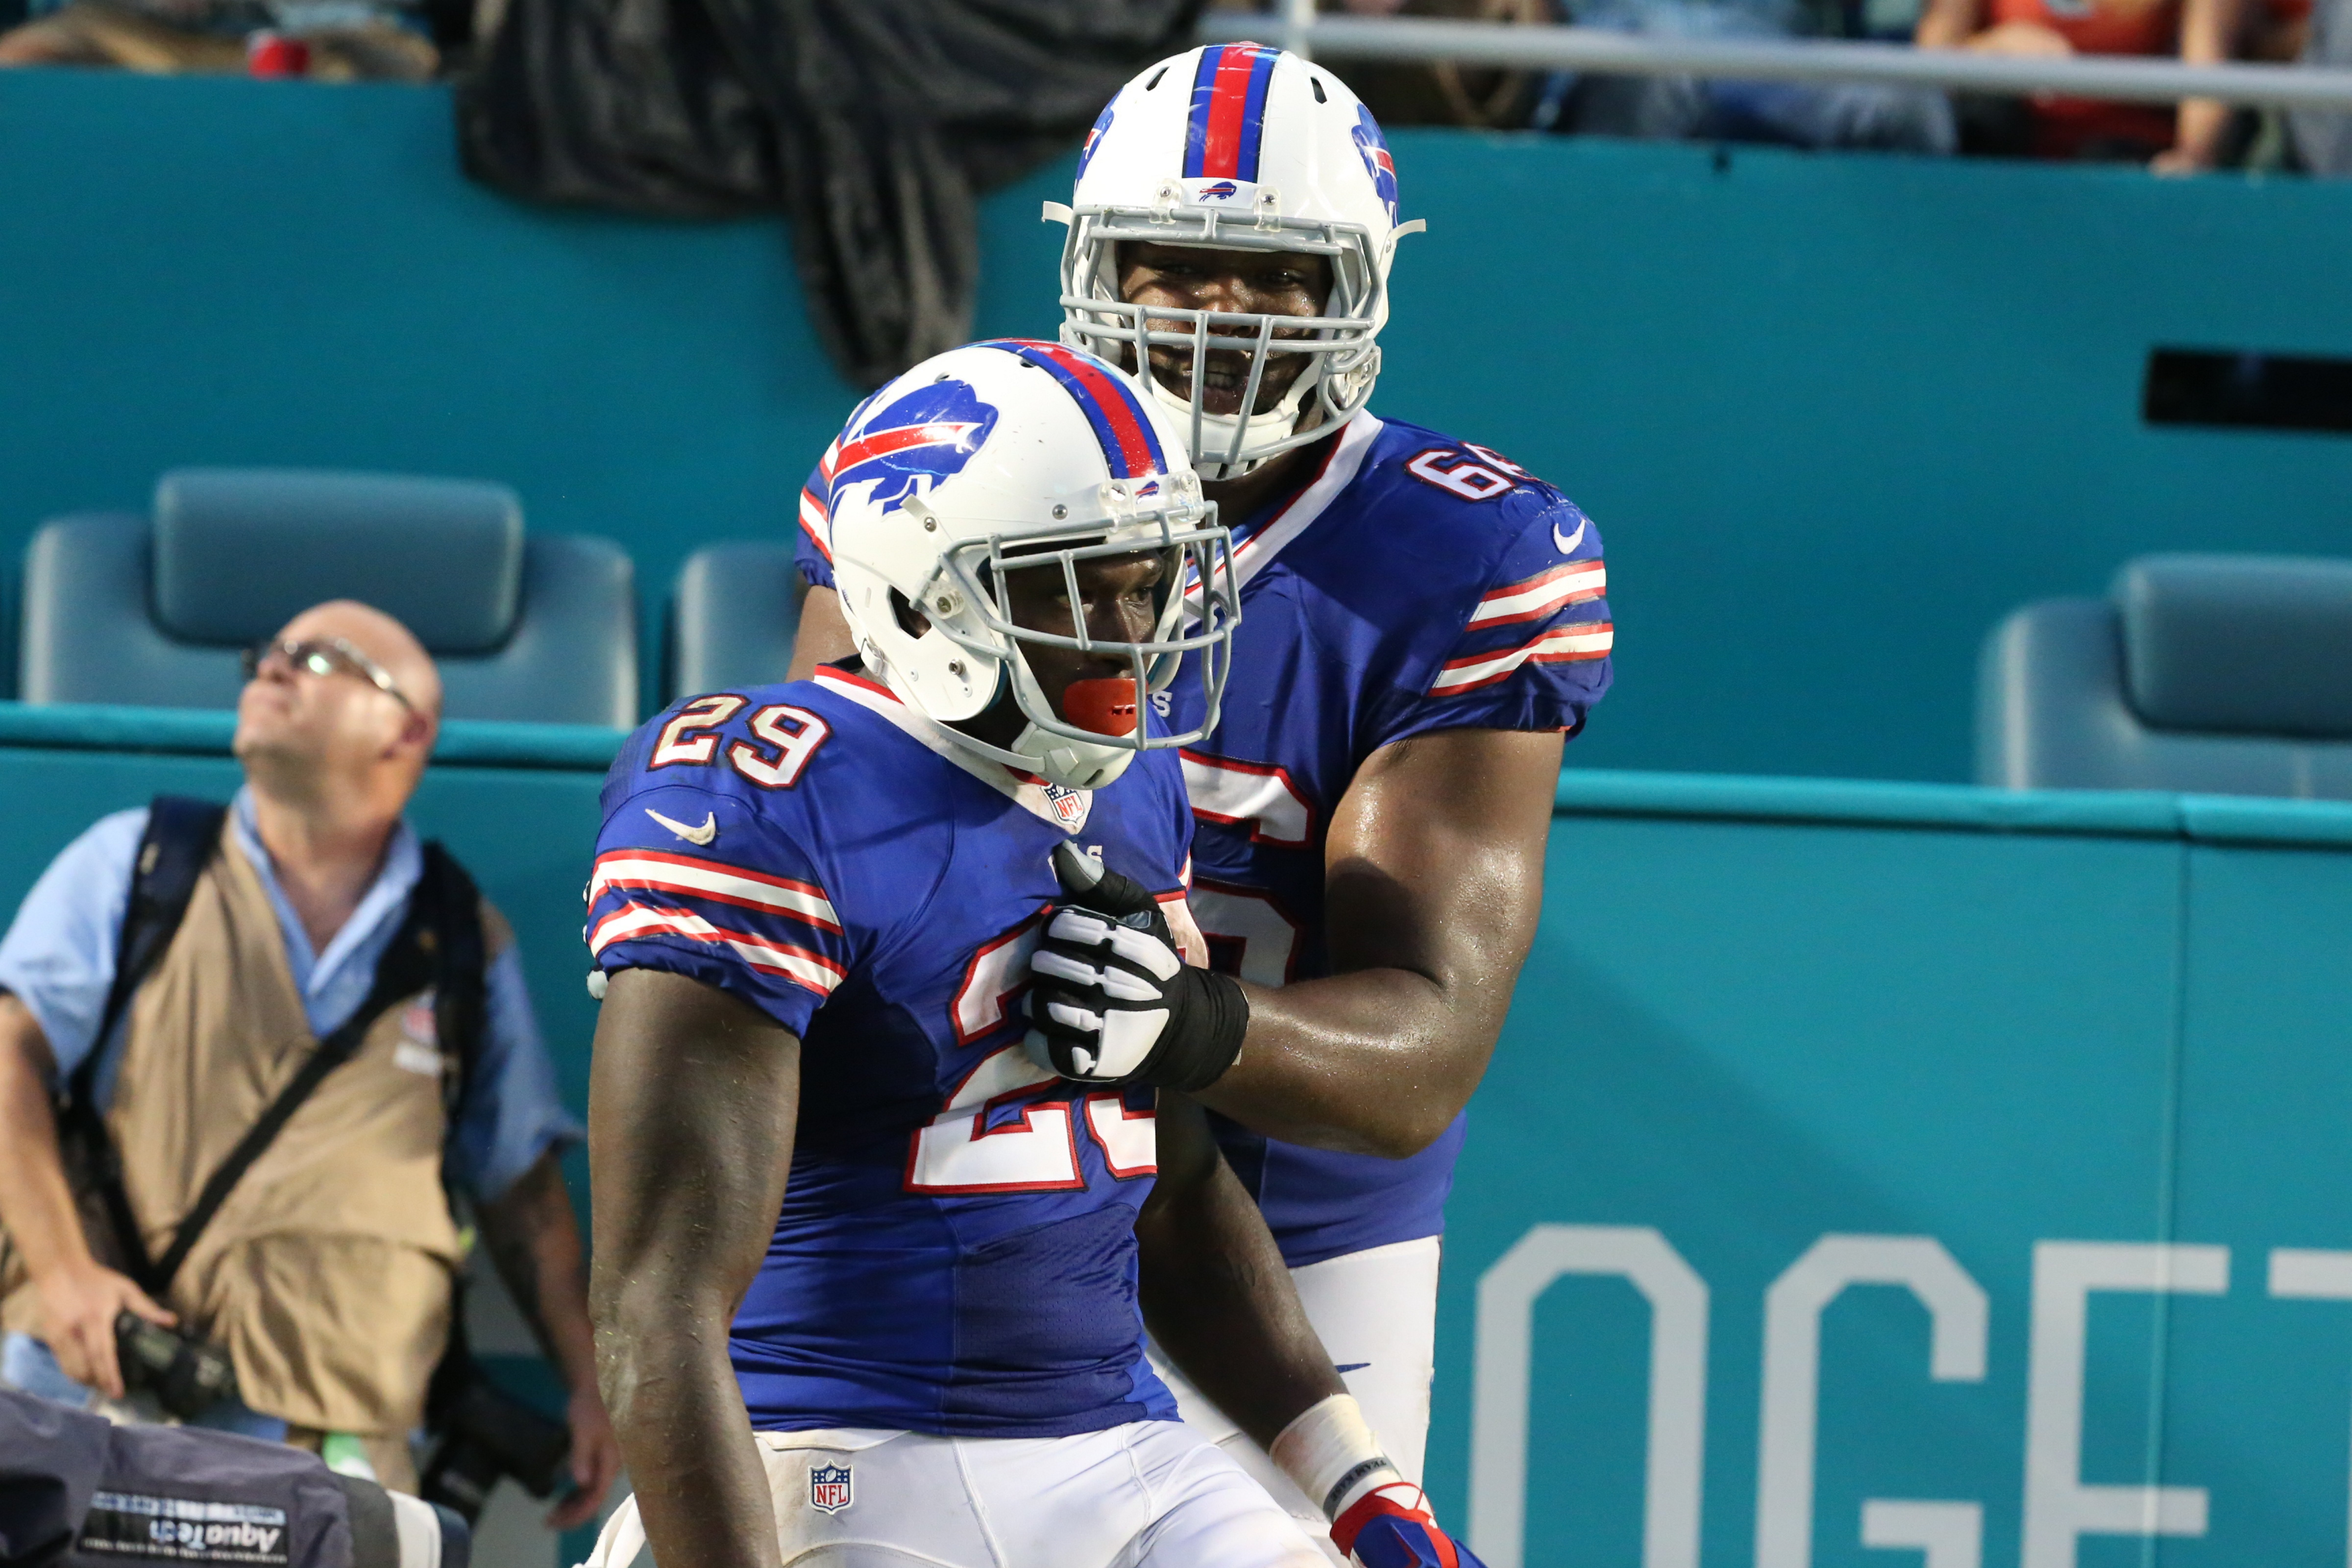 Buffalo Bills running back Karlos Williams (29) celebrates after his 41-yard fourth-quarter touchdown in the Bills' first meeting against the Dolphins. (James P. McCoy/ Buffalo News)